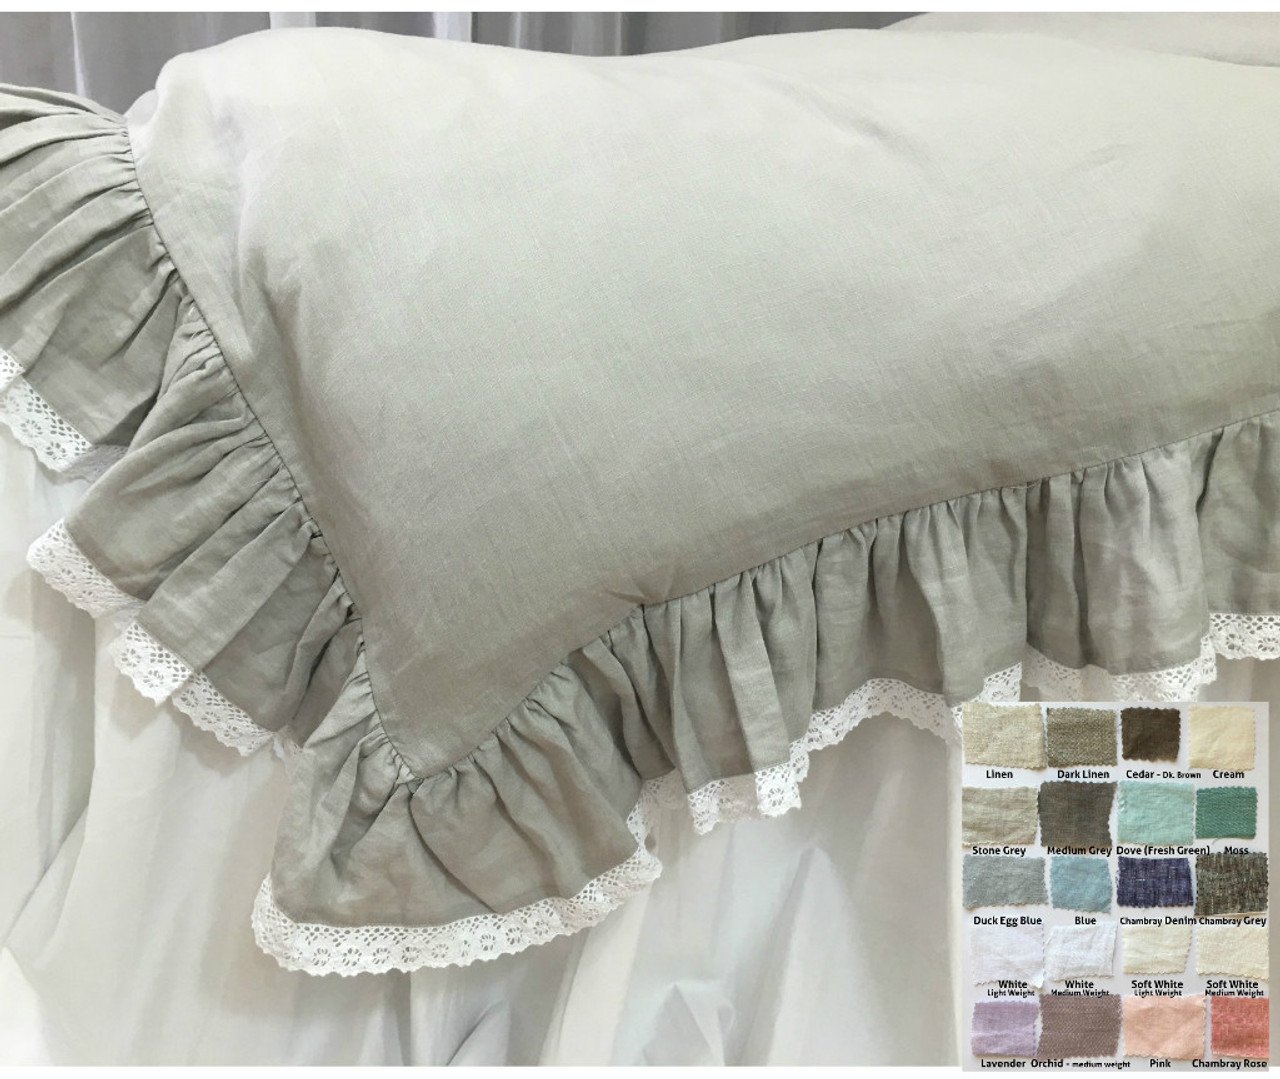 Linen Ruffle Duvet Cover With Lace Hem White Gray Blue